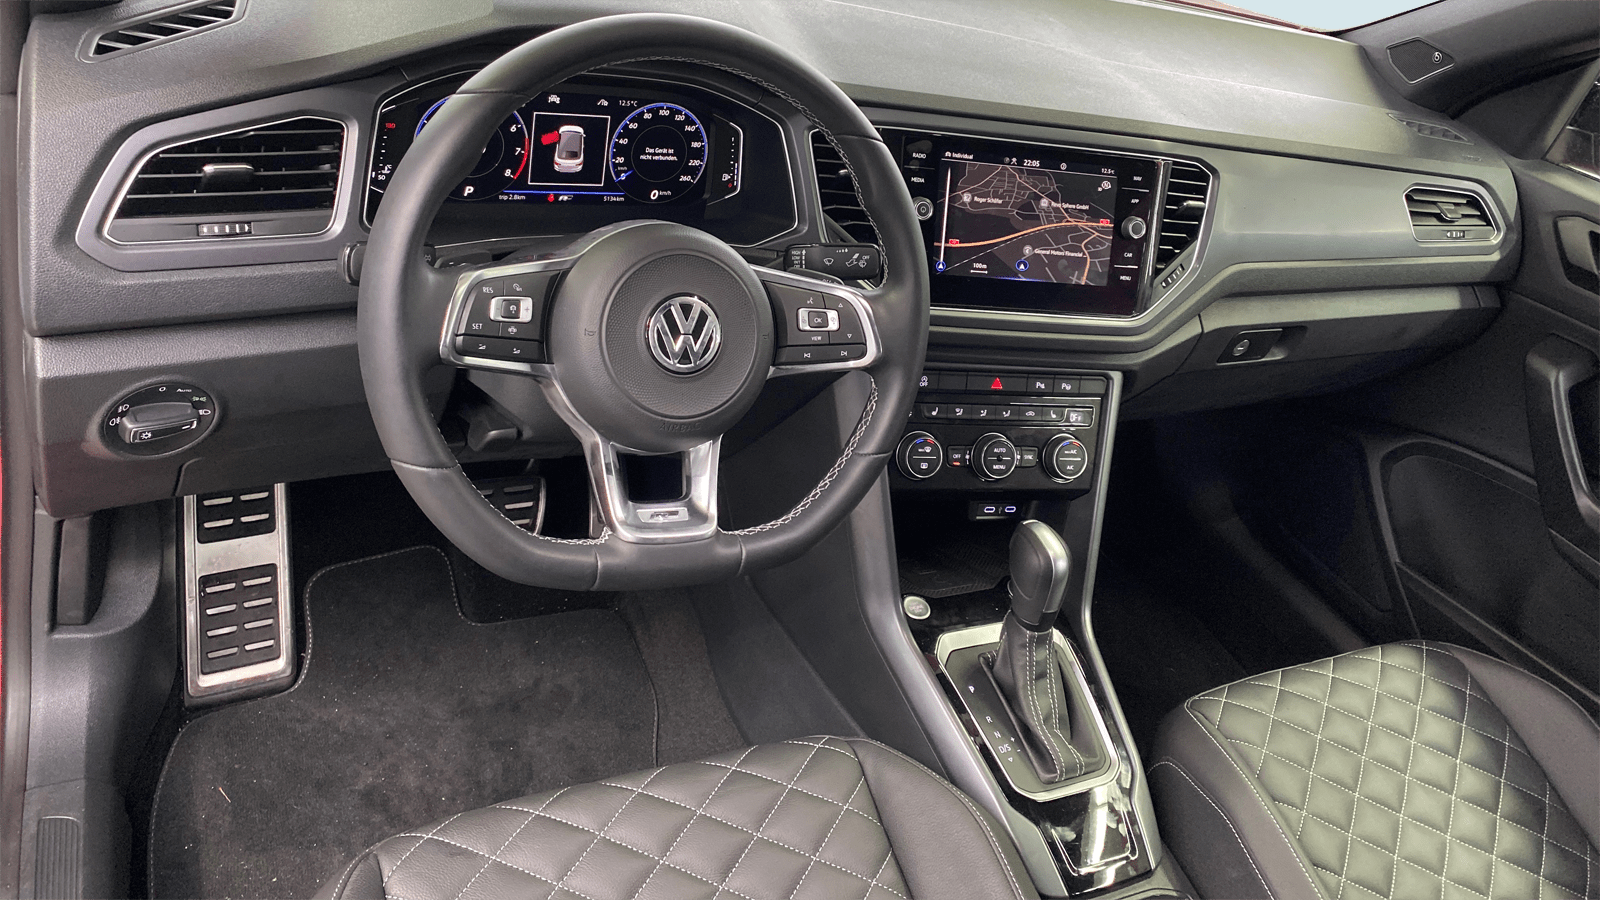 VW T-Roc Cabriolet Red interior - Clyde car subscription